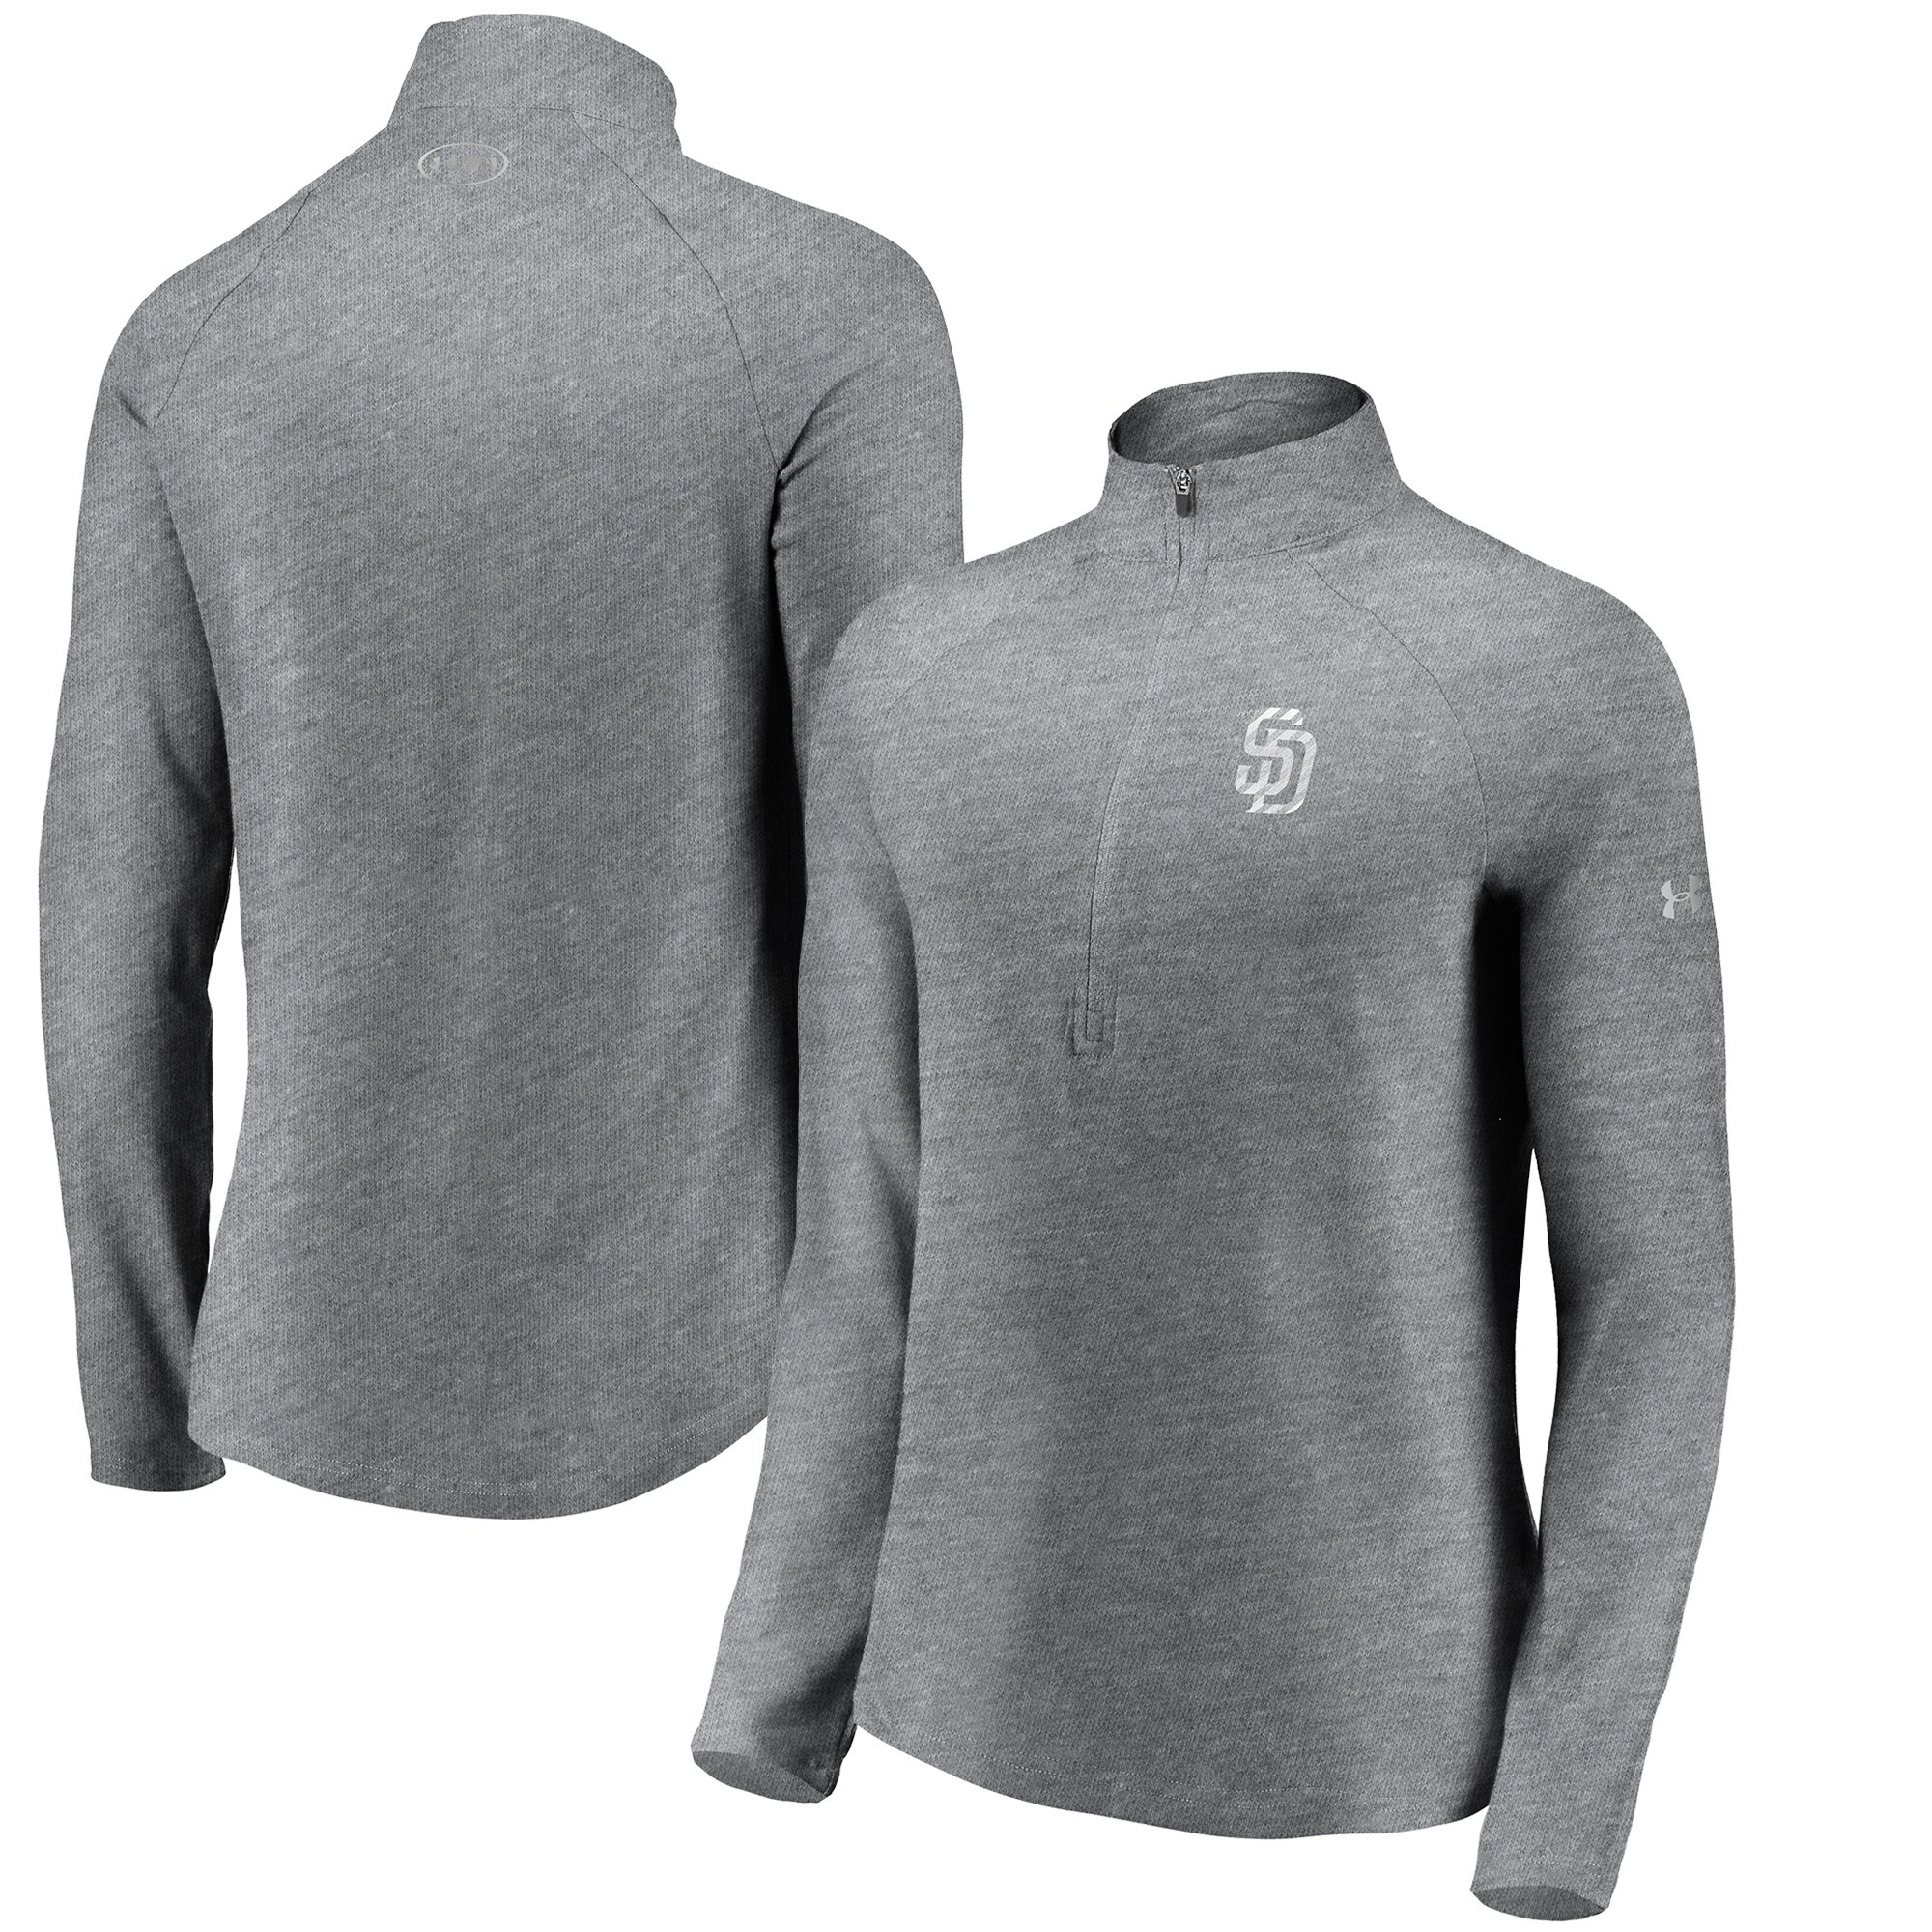 San Diego Padres Under Armour Women's Passion Alternate Performance Tri-Blend Raglan Half-Zip Pullover Jacket - Heathered Gray